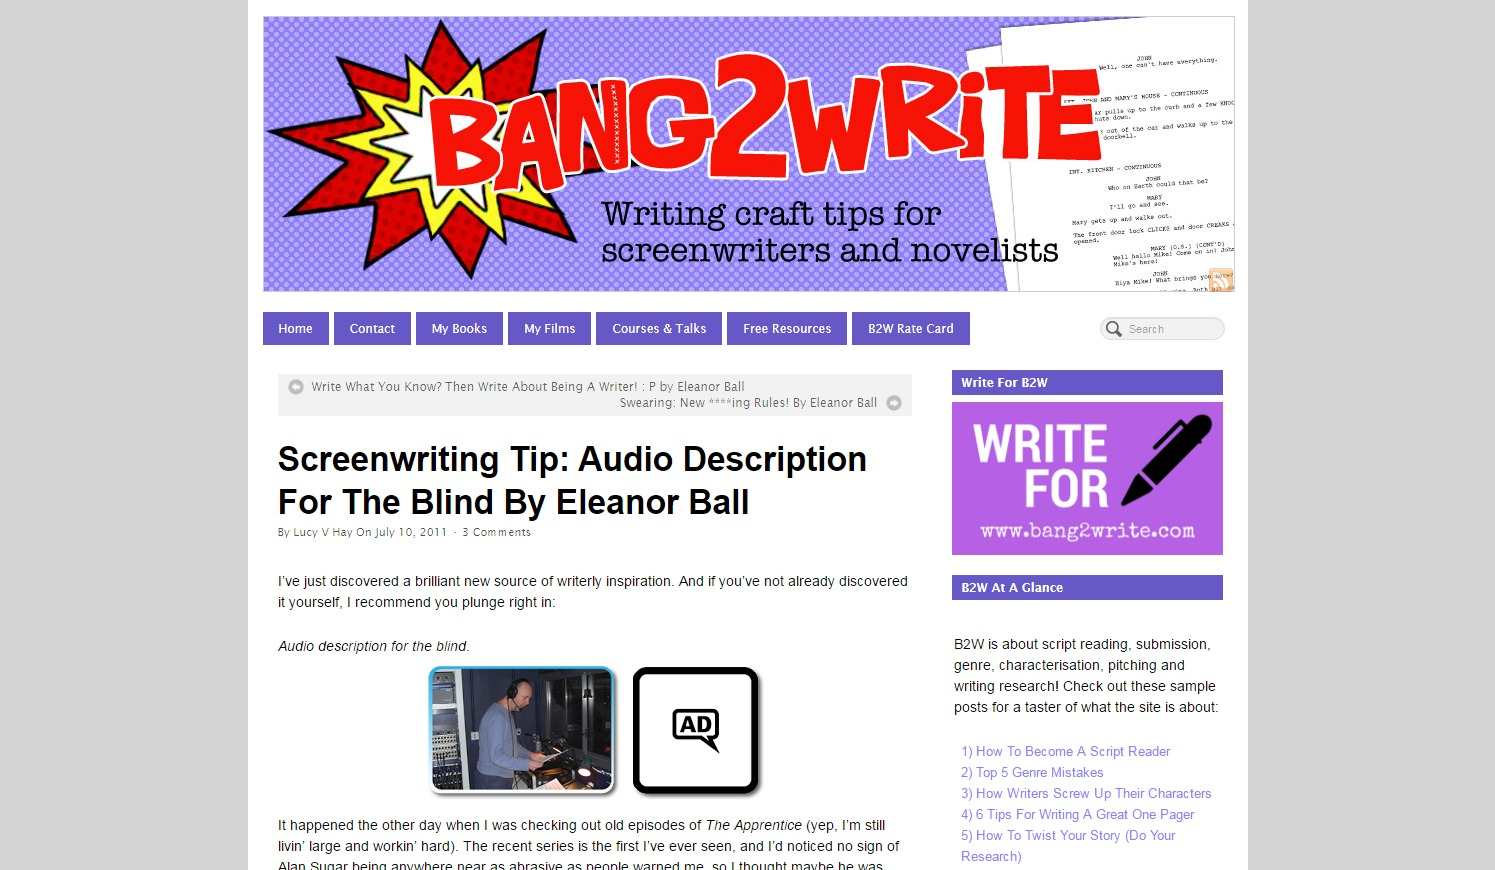 Screenwriting Tip: Audio Description for the Blind By Eleanor Ball